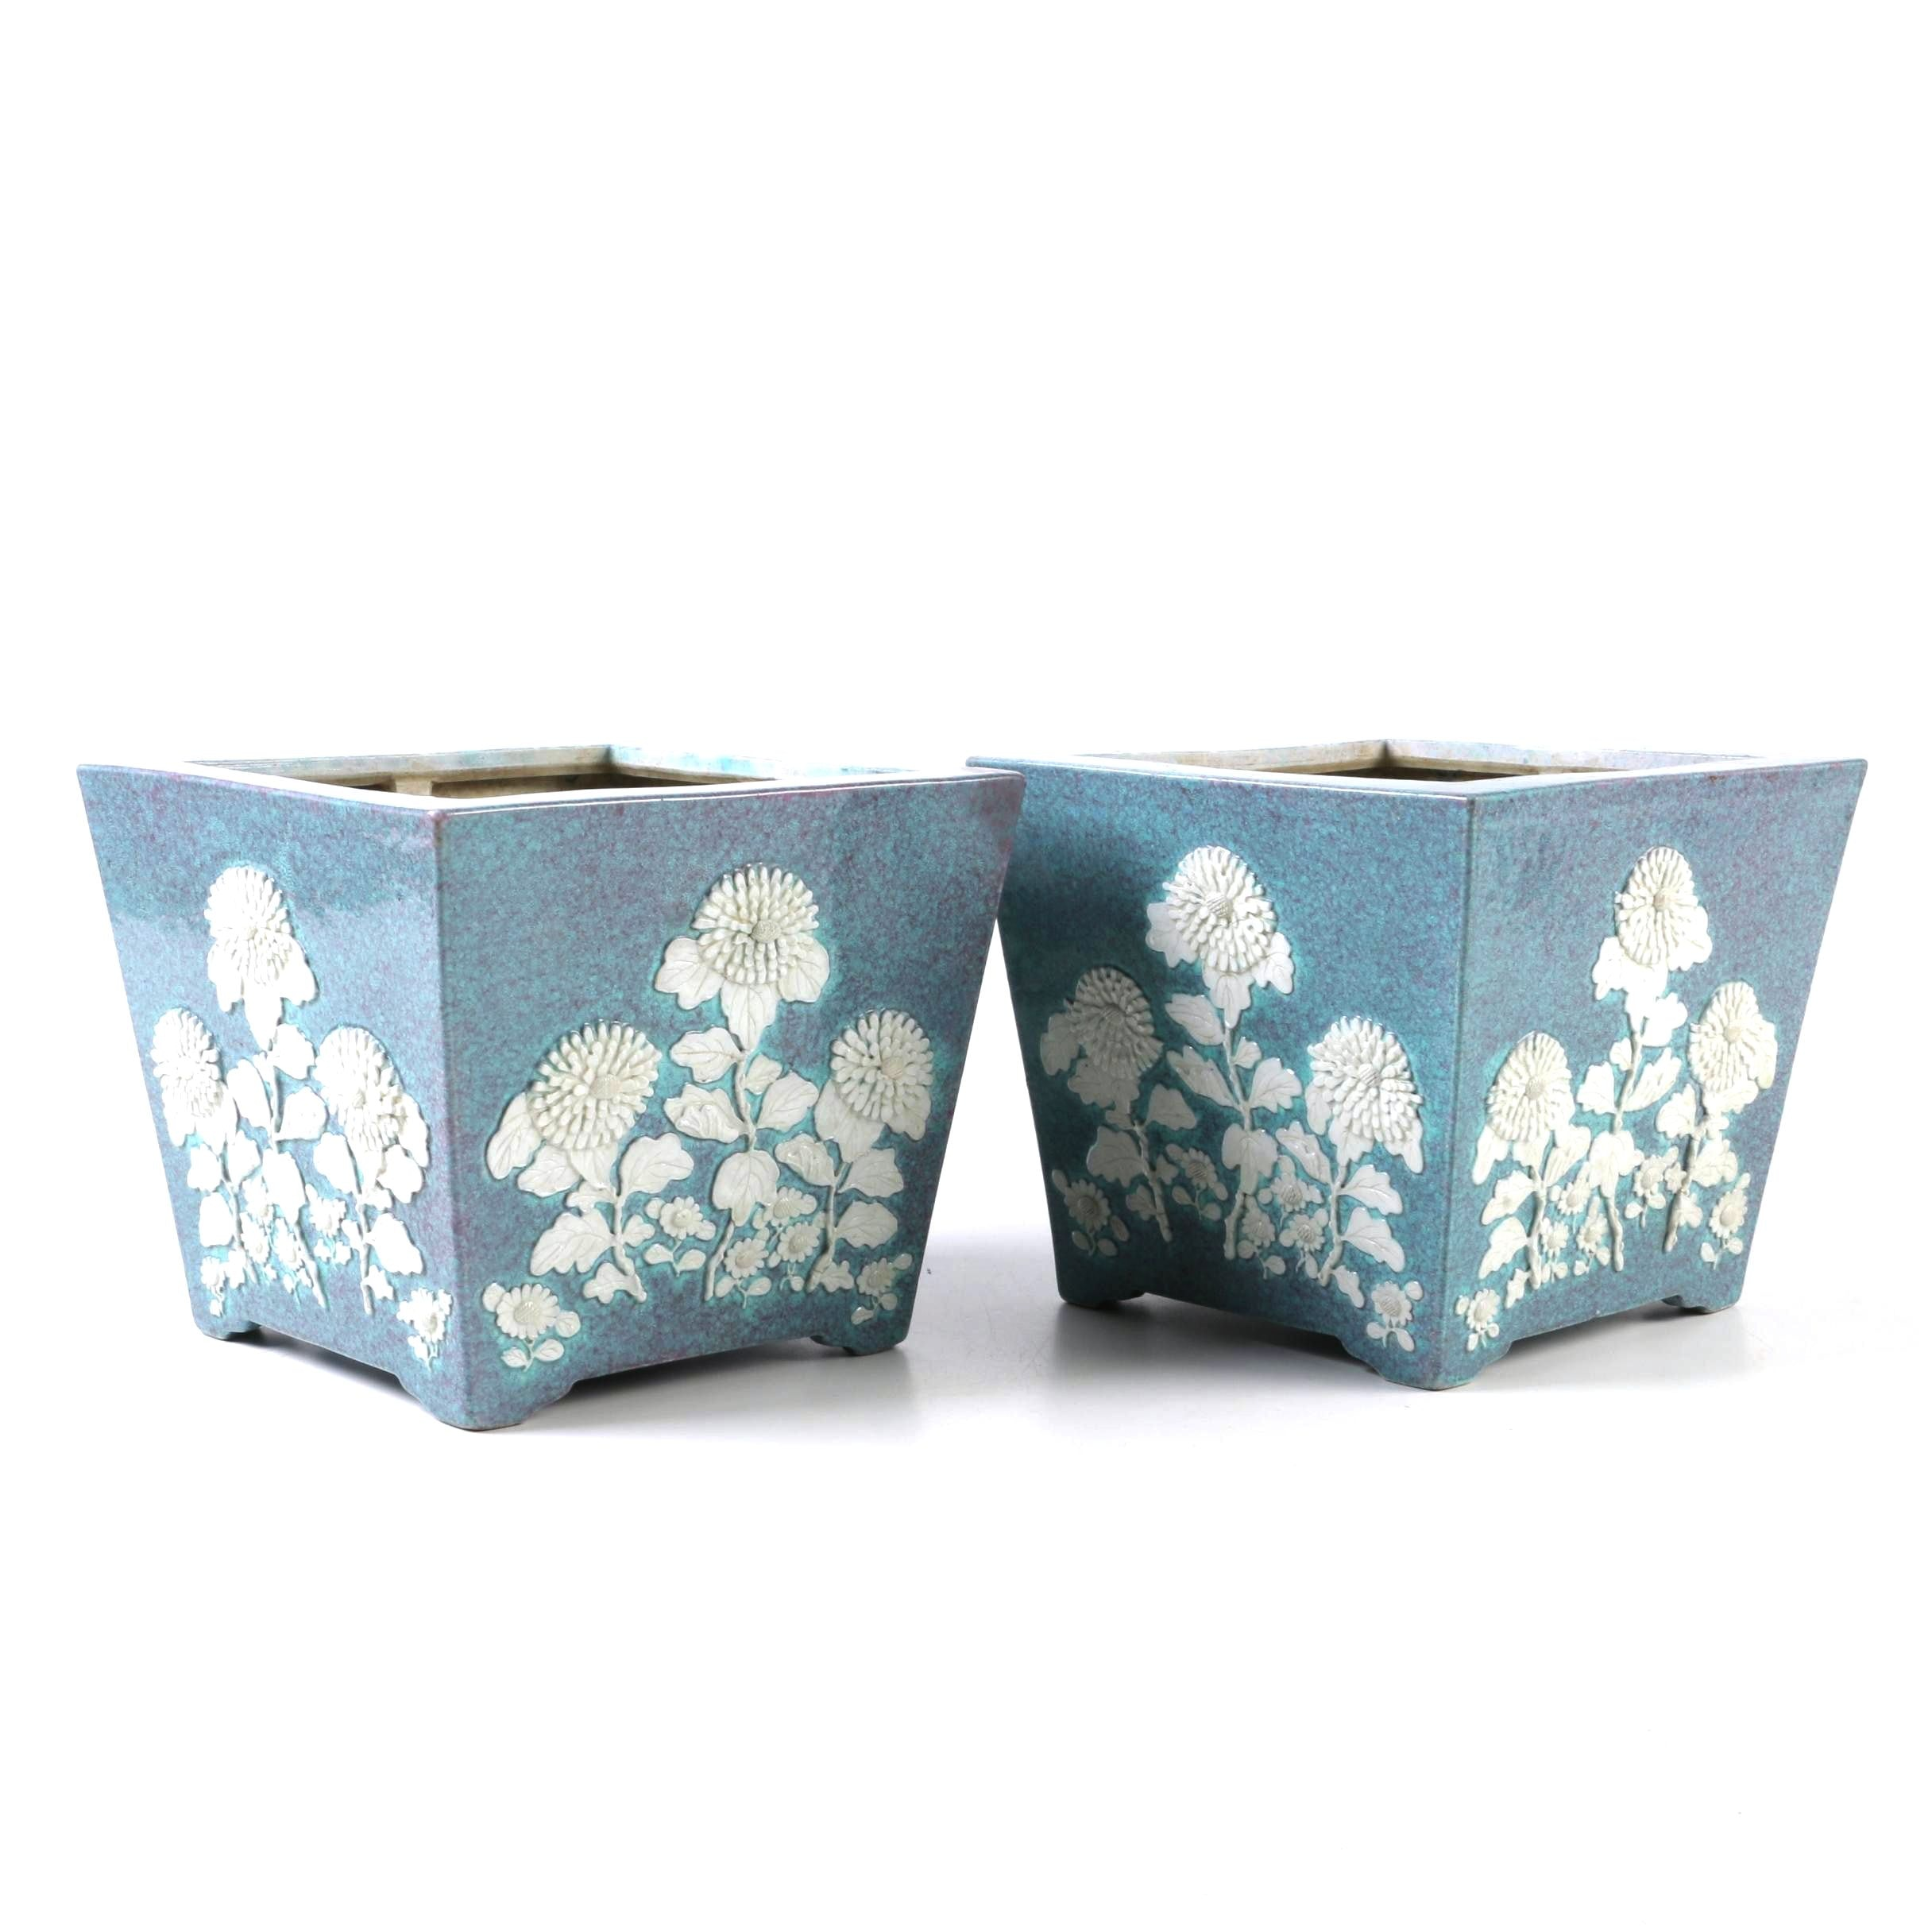 Chinese Porcelain Planters with Applied Floral Relief, Late Qing Dynasty